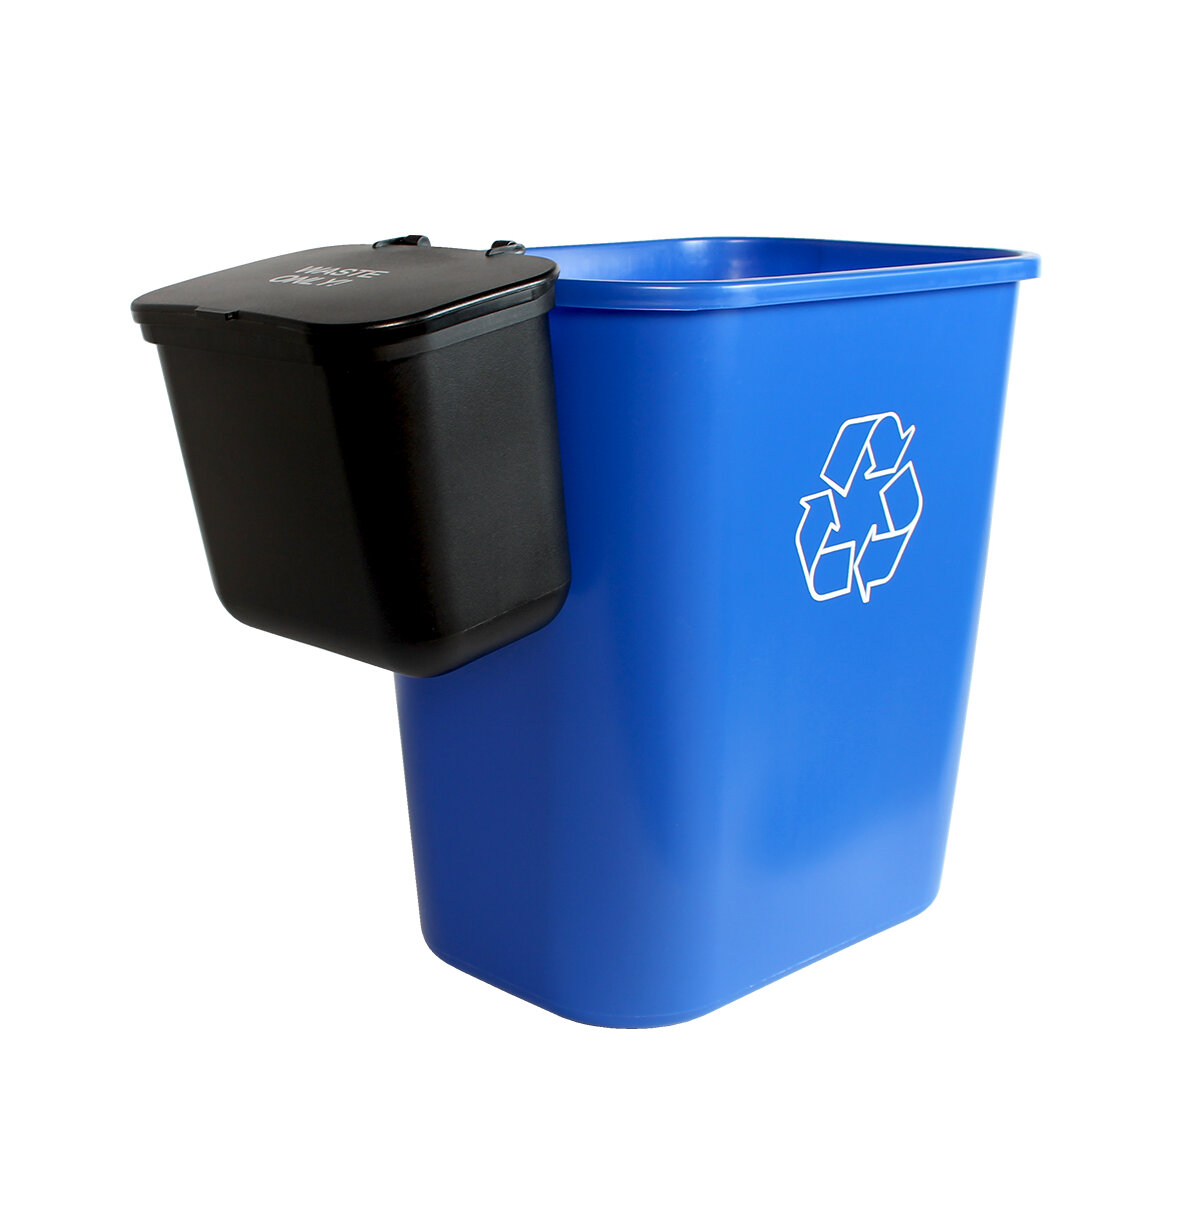 Busch Systems Office Combo Solid Lift 7.75 Gallon 2 Piece Recycling Bin And  Waste Basket Set | Wayfair.ca